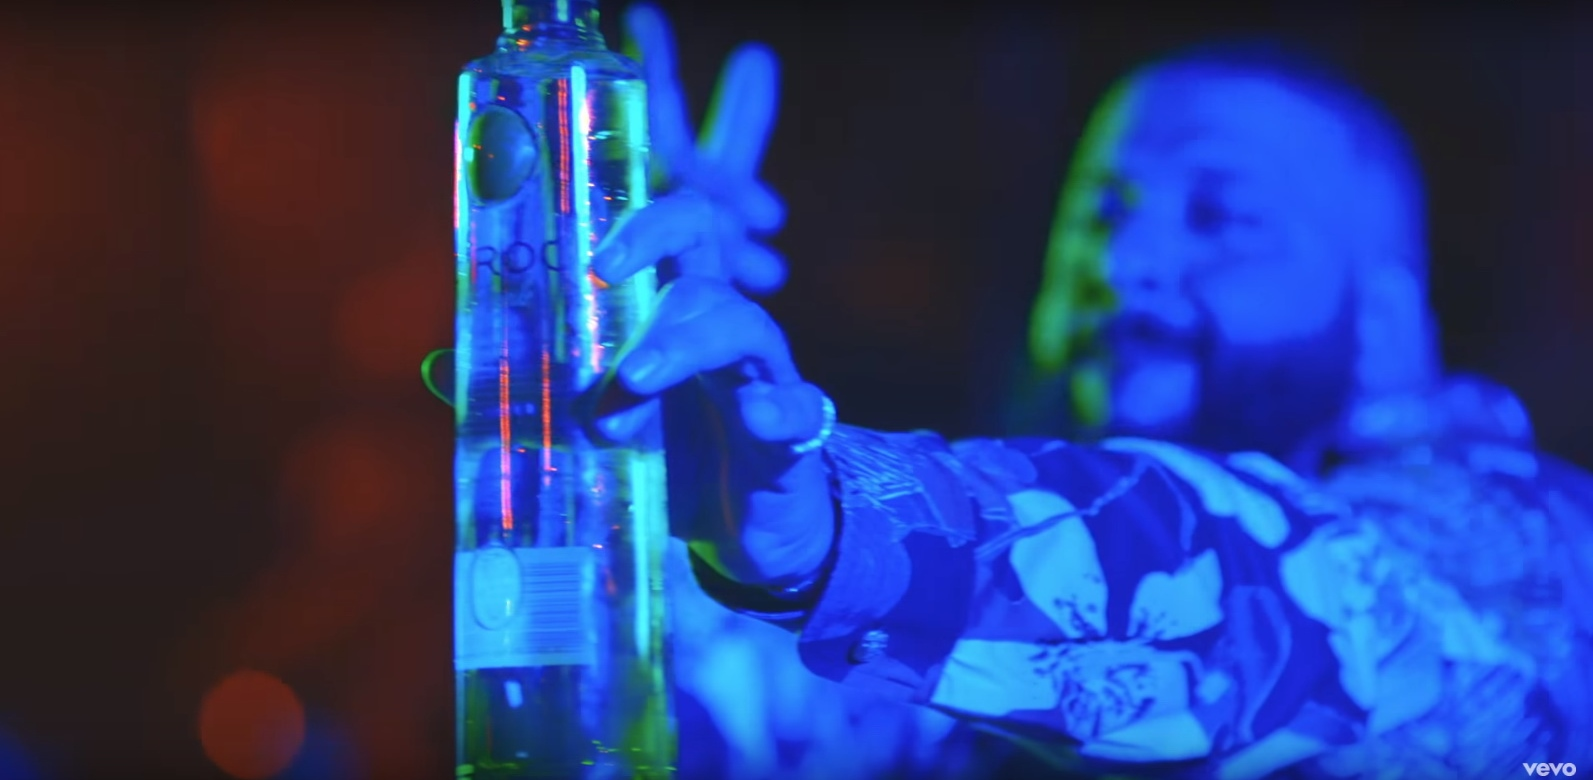 CÎROC Vodka - DJ Khaled - Wild Thoughts Official Music Video Product Placement